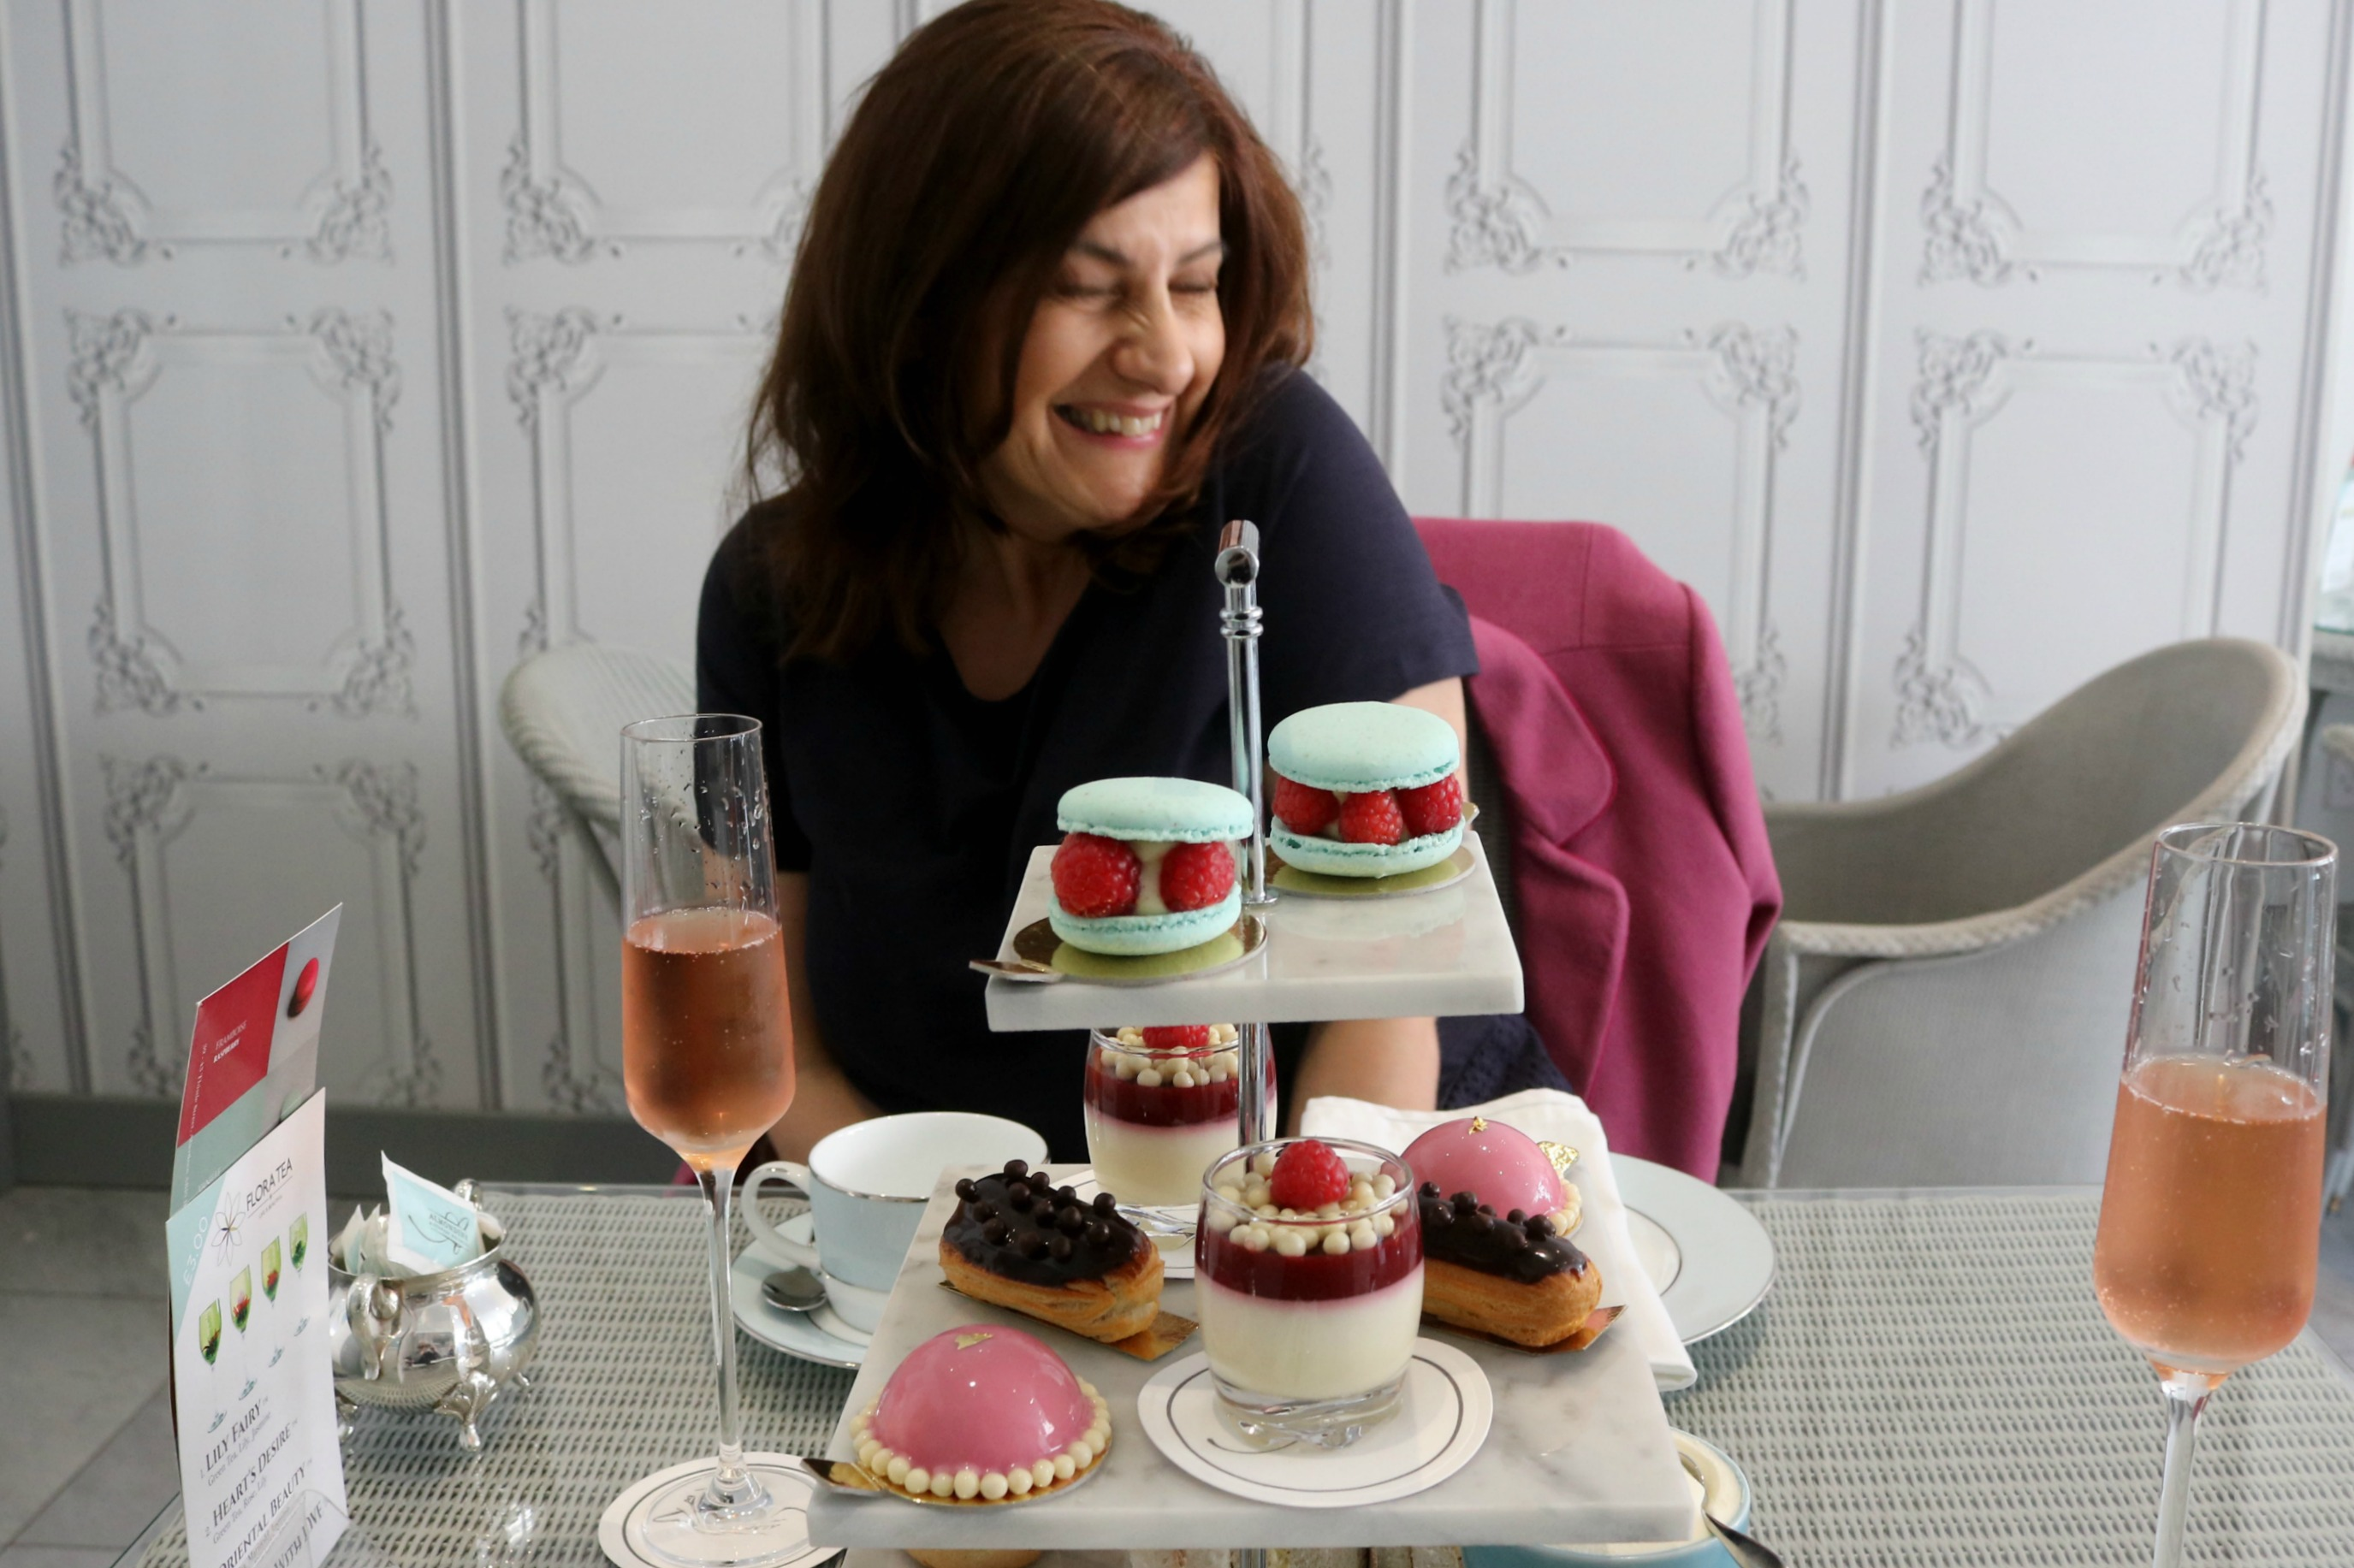 A Macaron Afternoon Tea, Cocktails and Why I Love My Mam